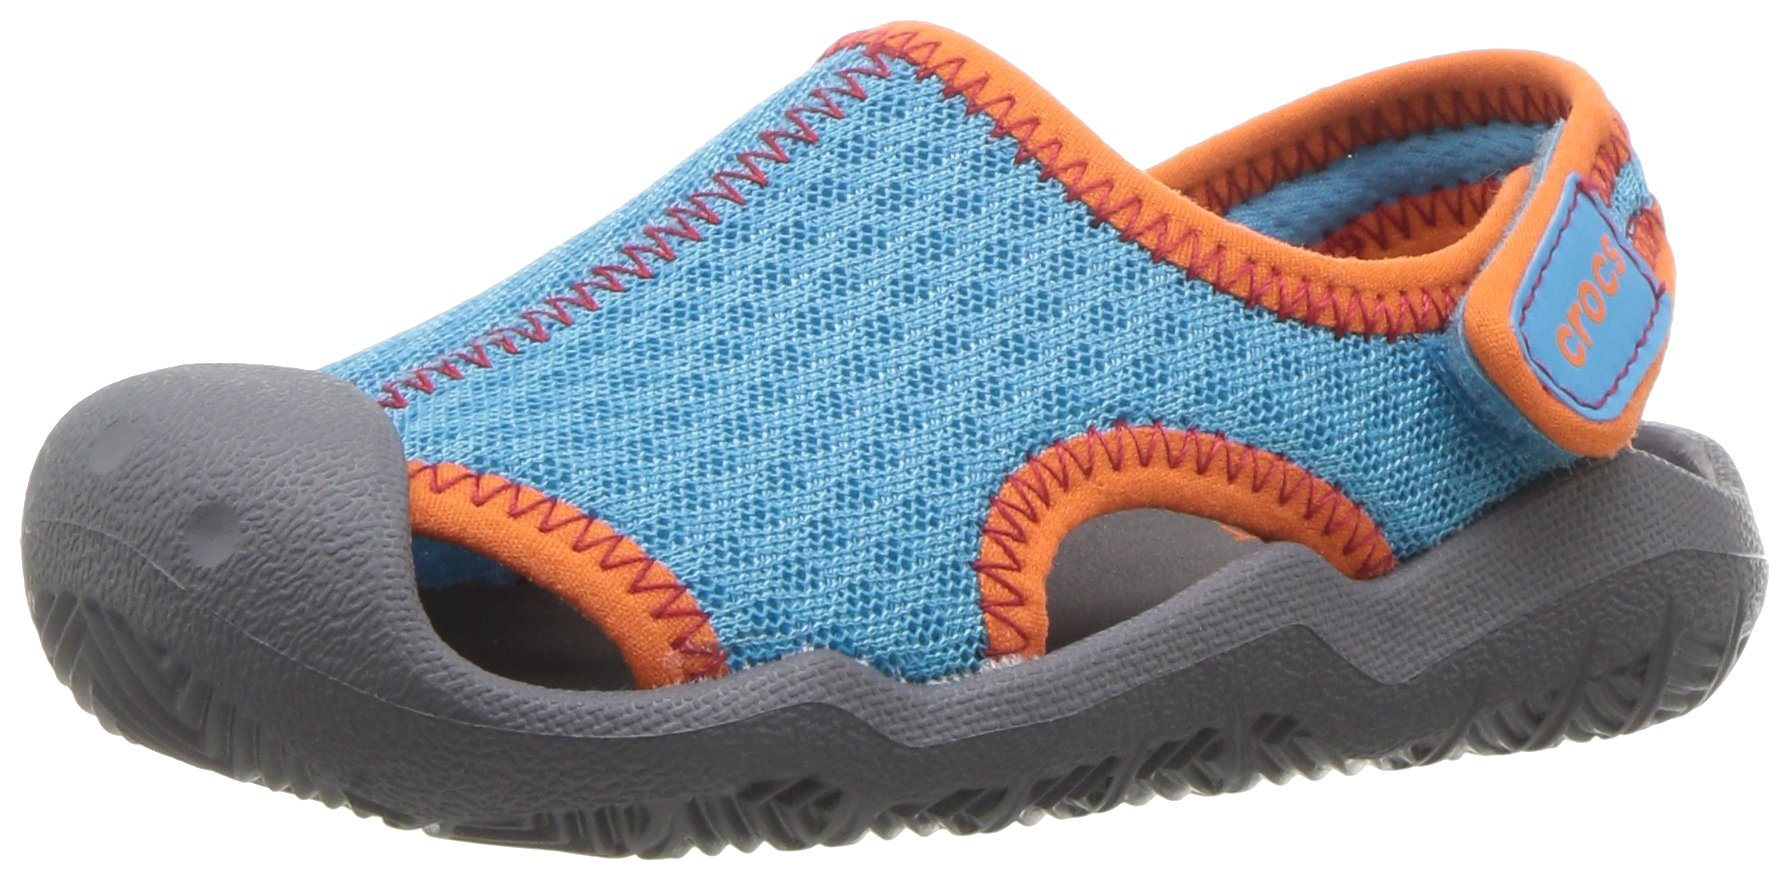 Crocs Kids' Swiftwater Sandal,Cerulean Blue/Smoke,13 M US Little Kid